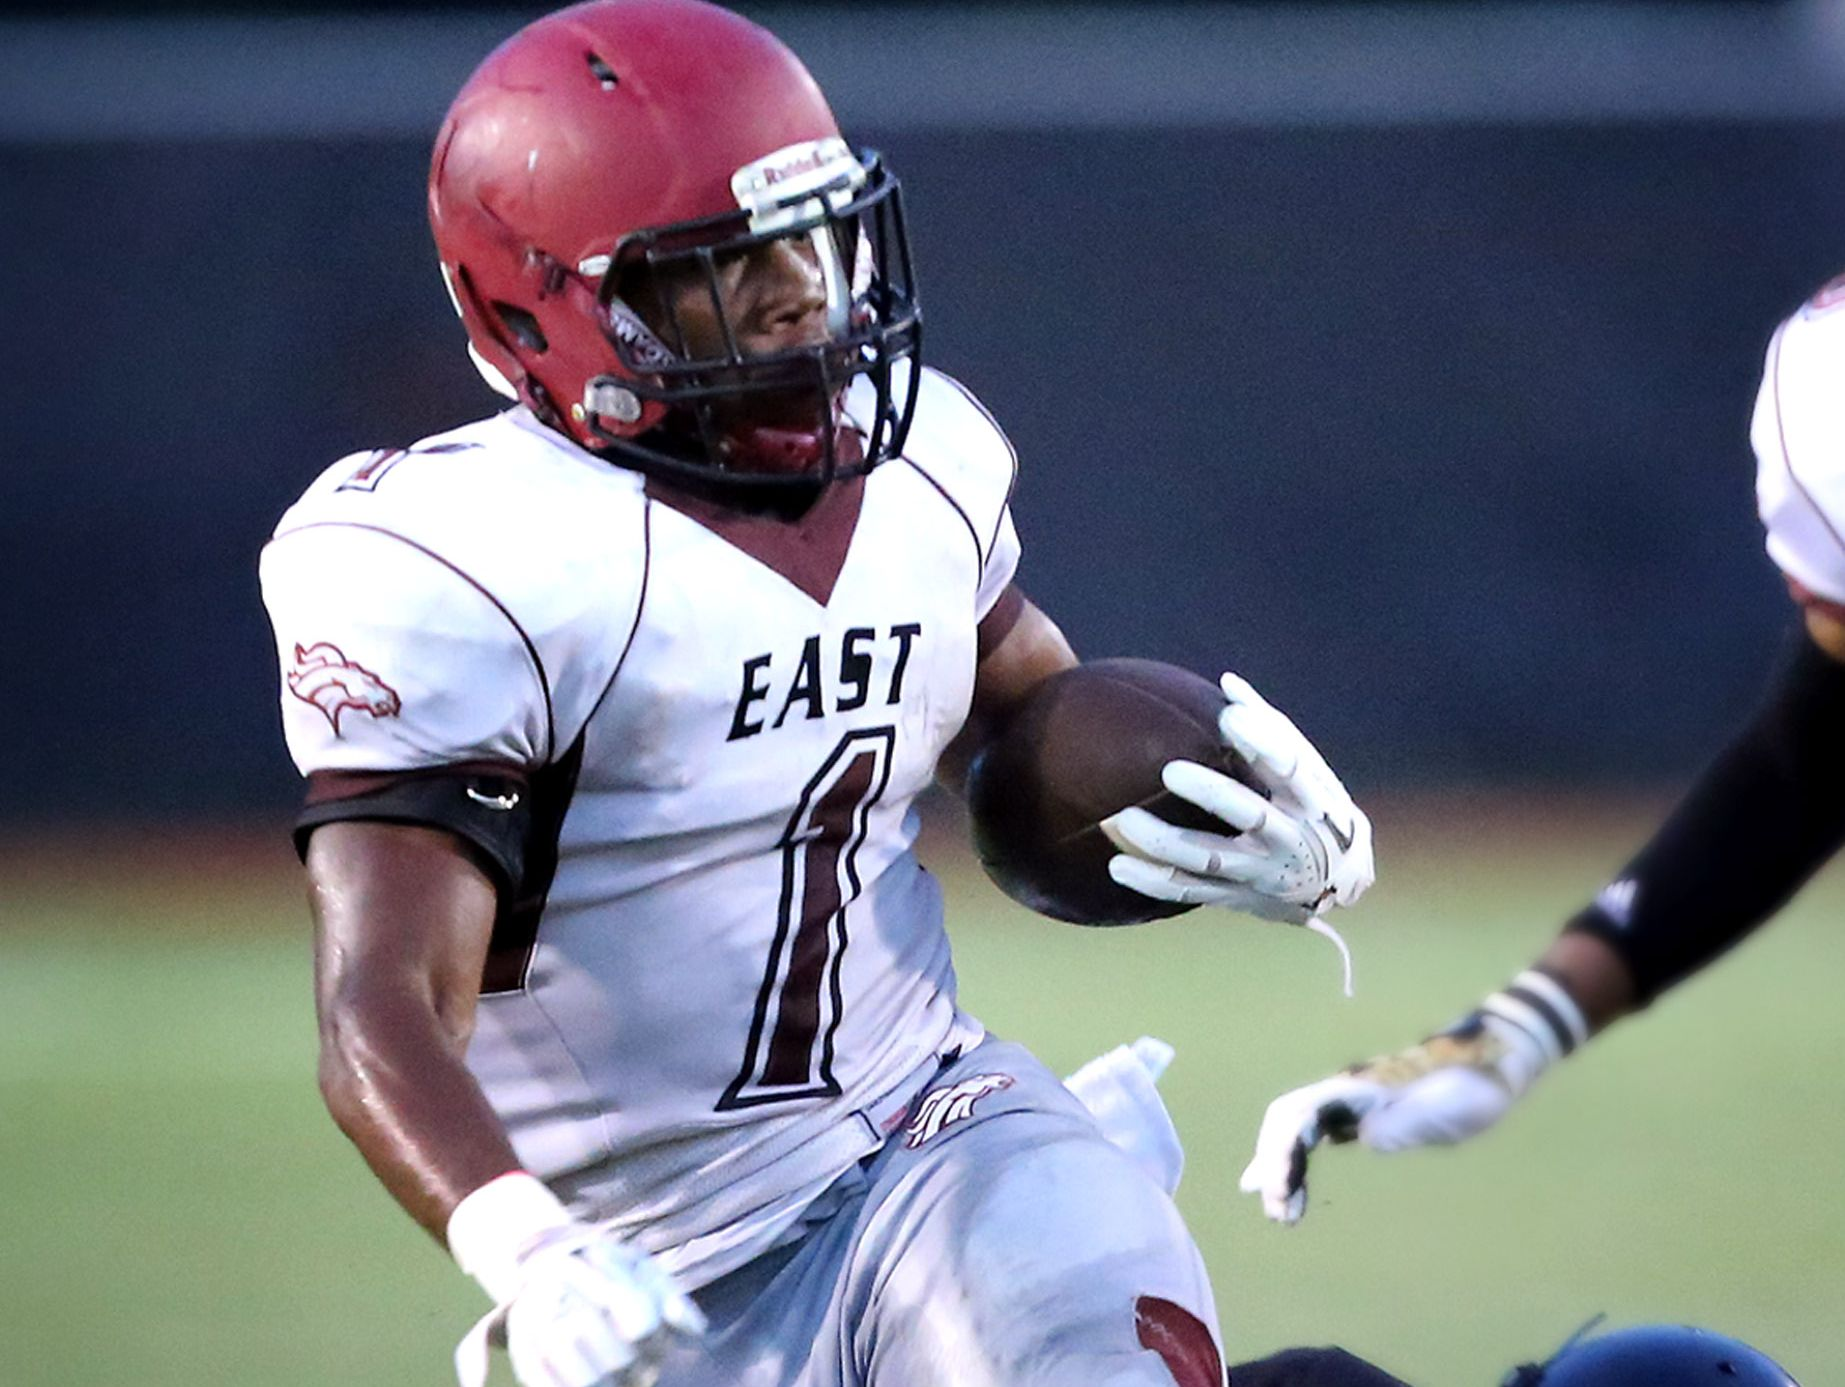 East's Timothy Taylor (shown here earlier in the season) ran for 260 yards and scored four touchdowns for the Mustangs last Friday.